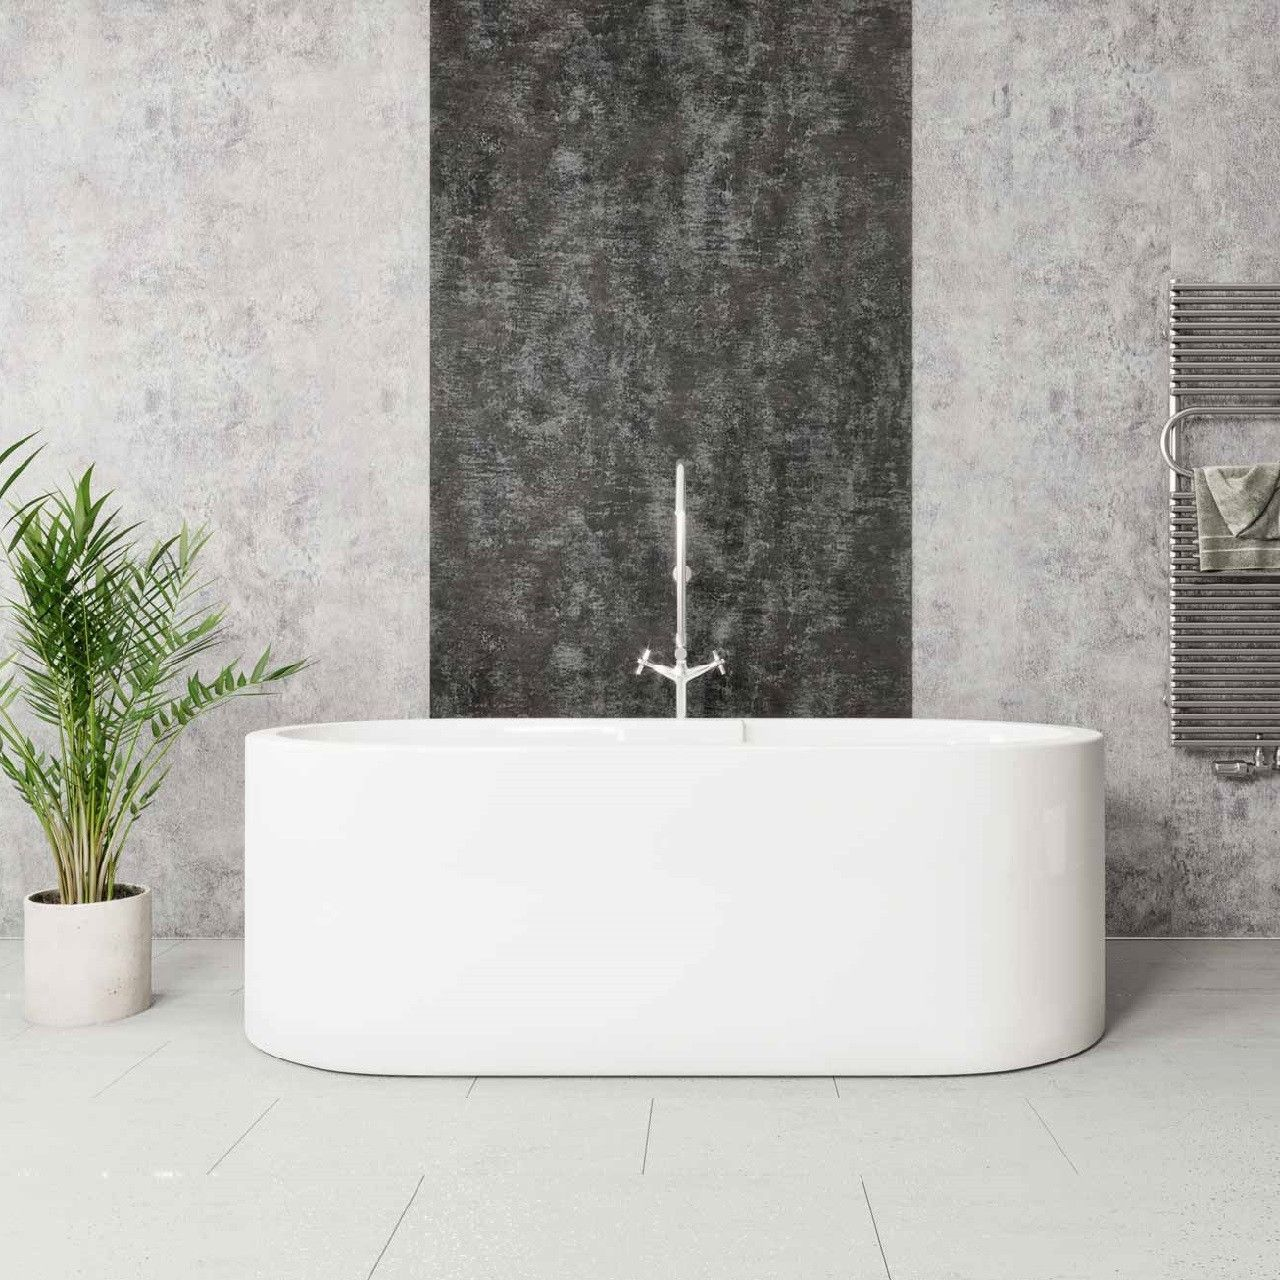 Why Not Opt For Waterproof Wall Panels These Clever Simply Slot Together To Create A Complete Seal Without The Need Tiresome